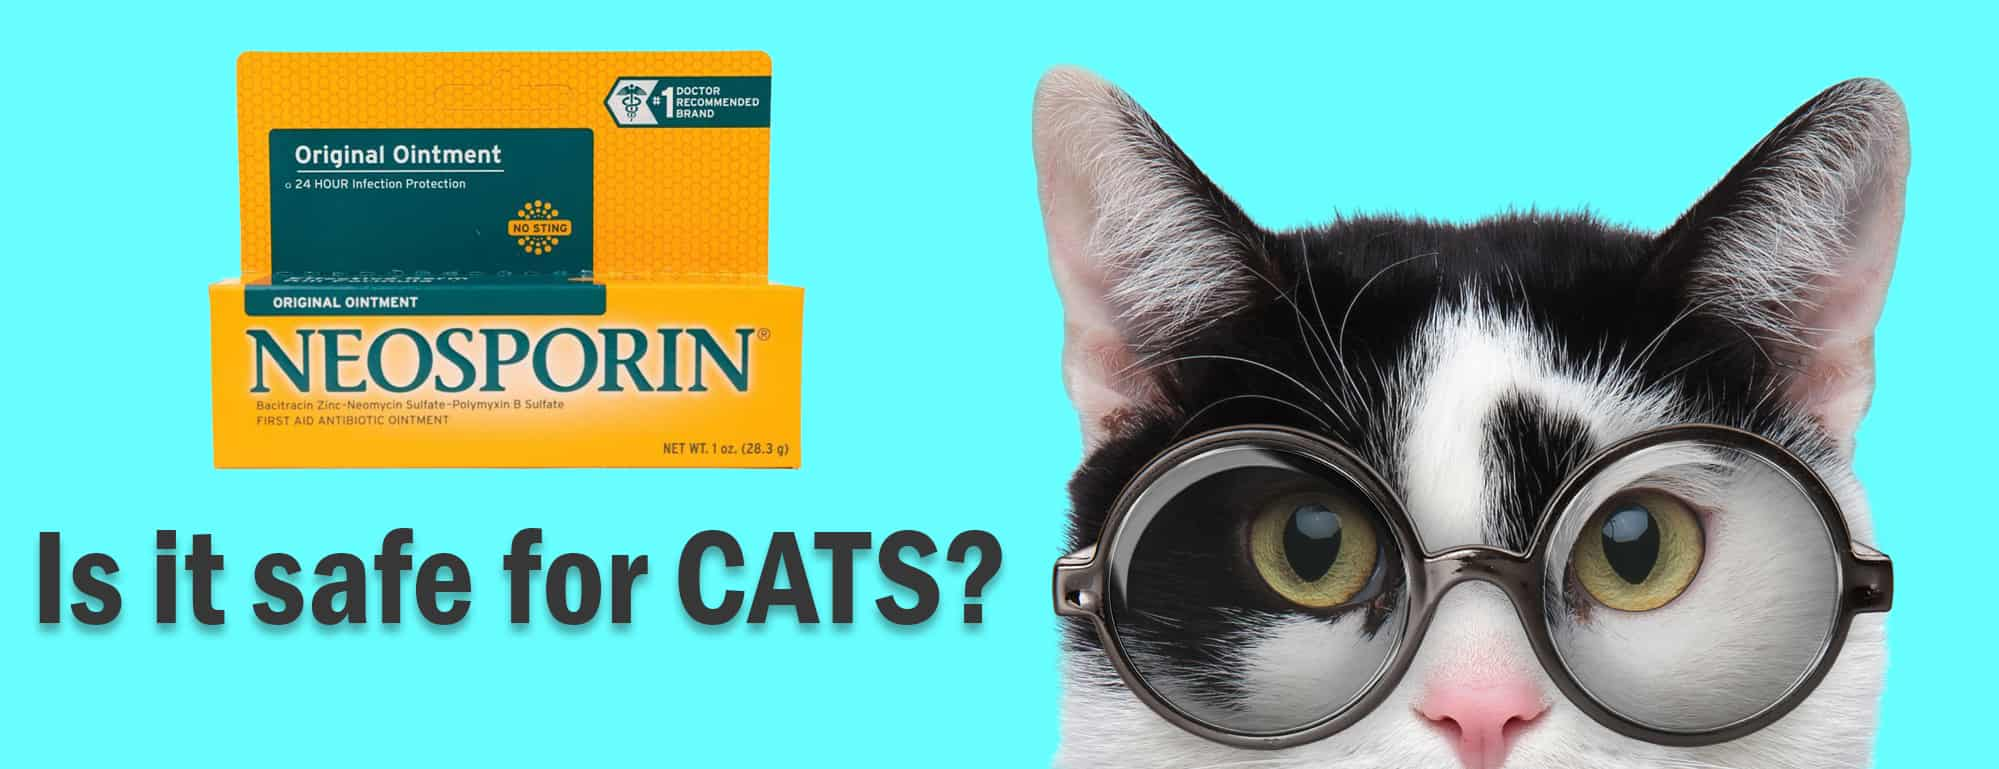 Neosporin - Is It Safe for Cats